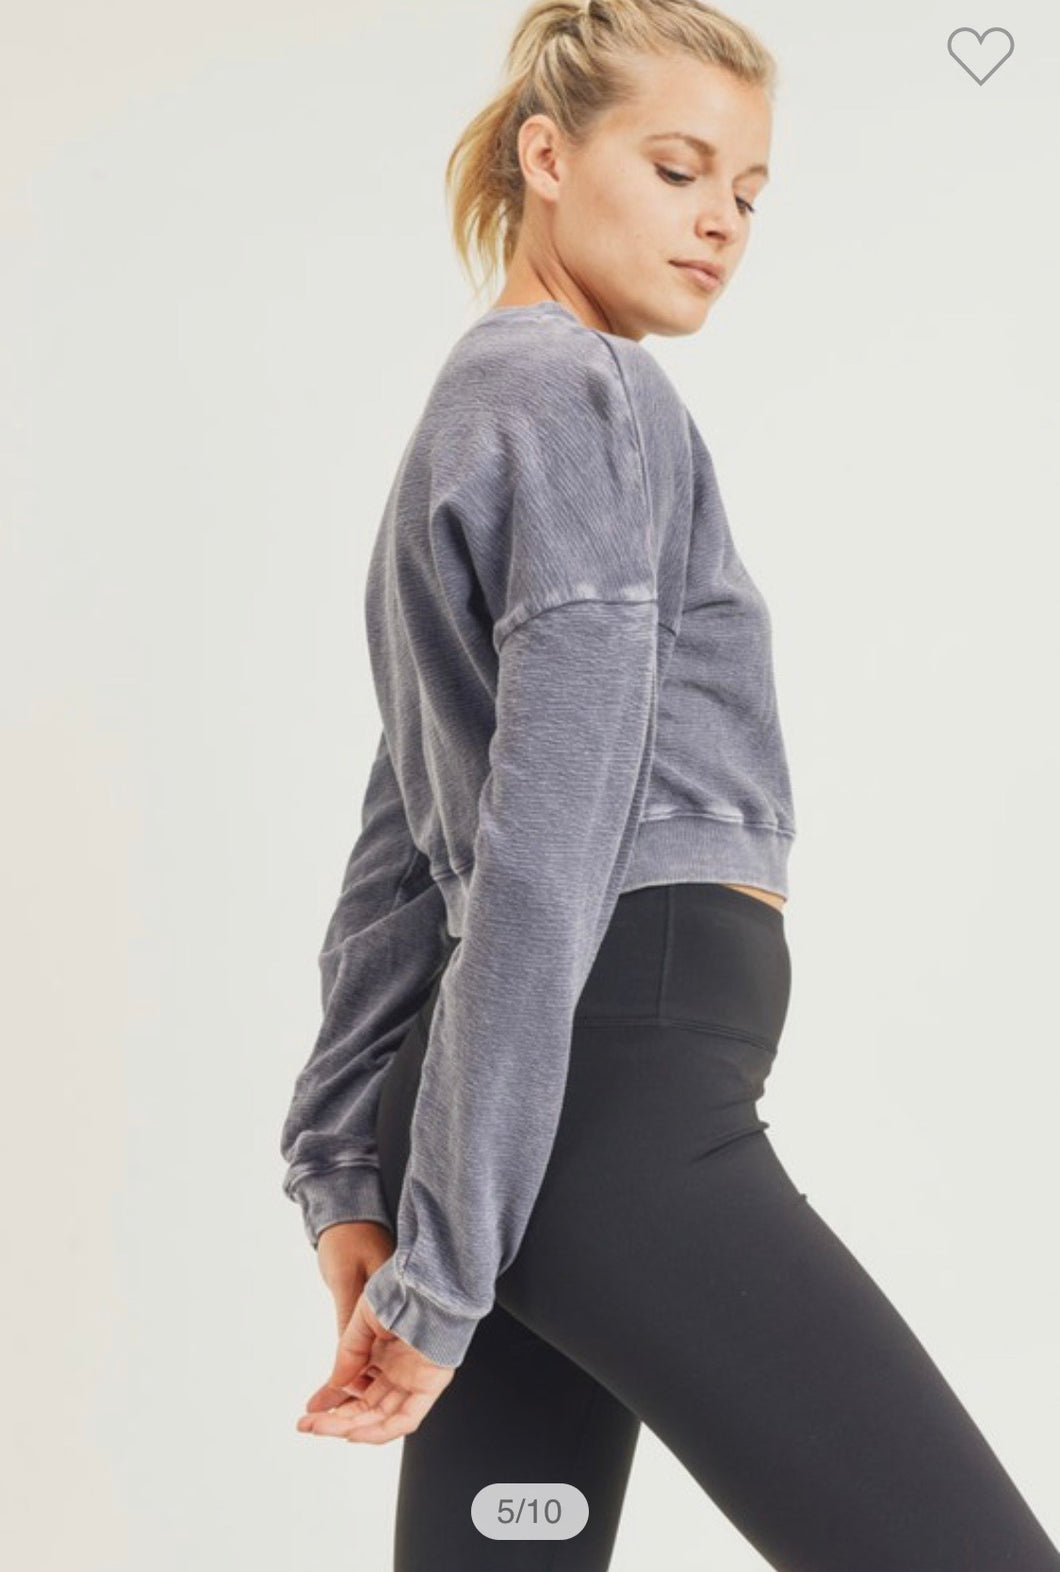 Cropped mineral washed sweatshirt in plum gray